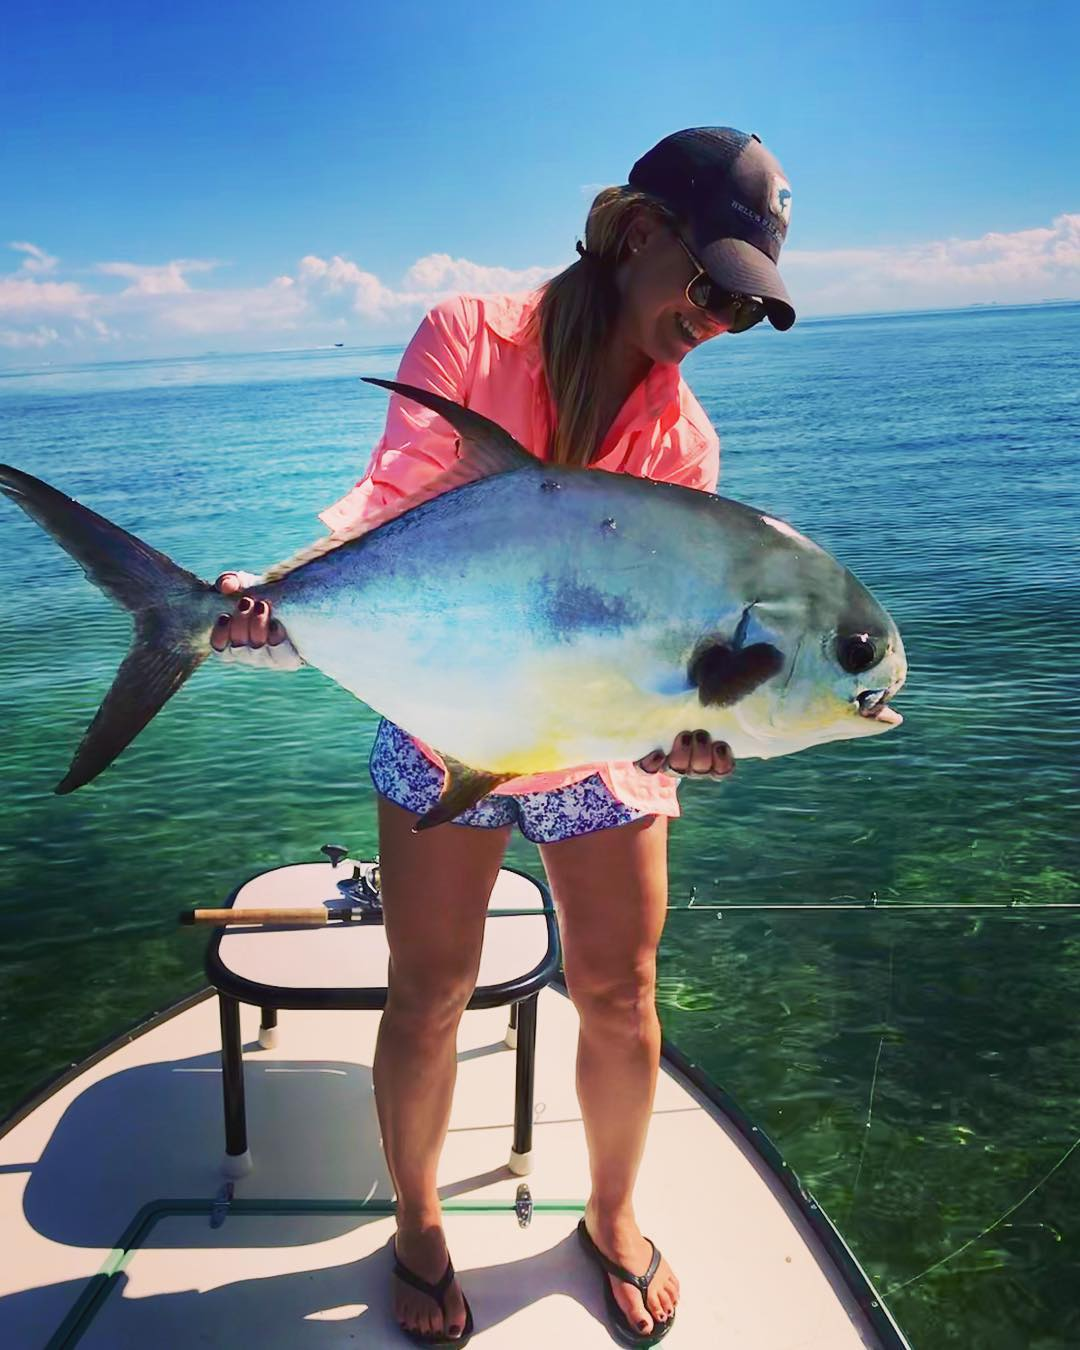 Permit on the flats can't be beat.